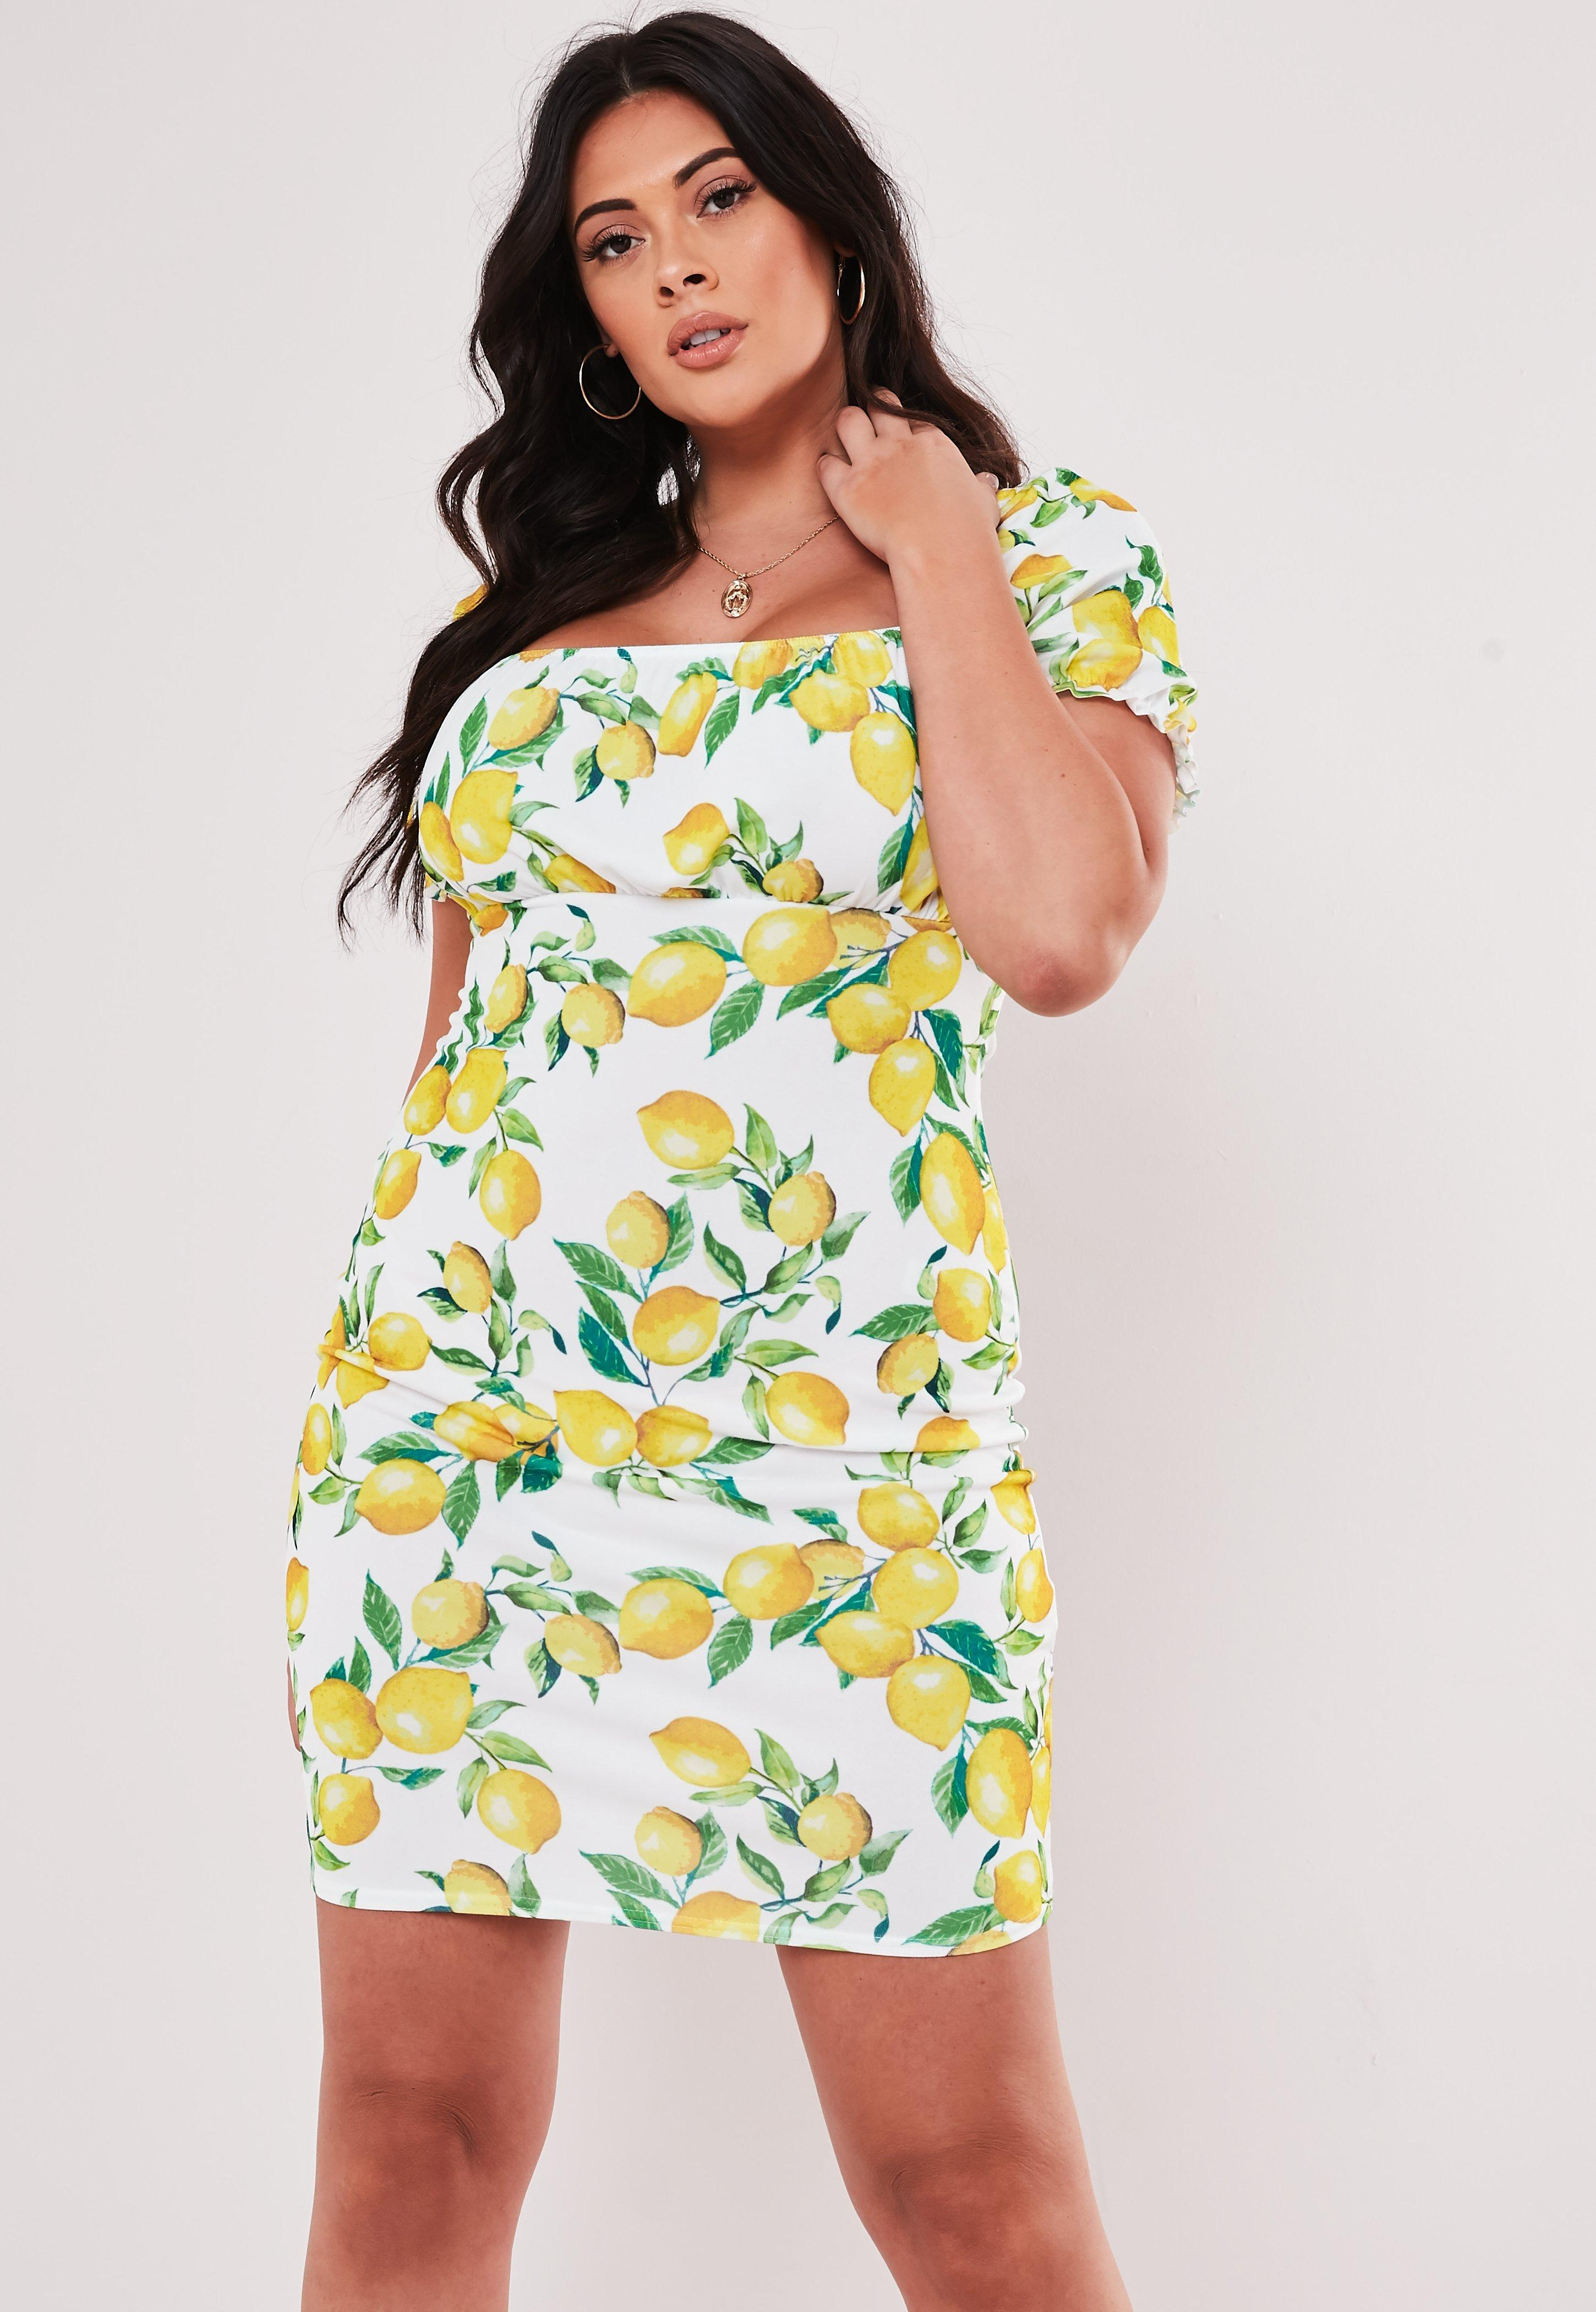 Plus Size Clothing | Womens Plus Size Dresses & Tops | Missguided